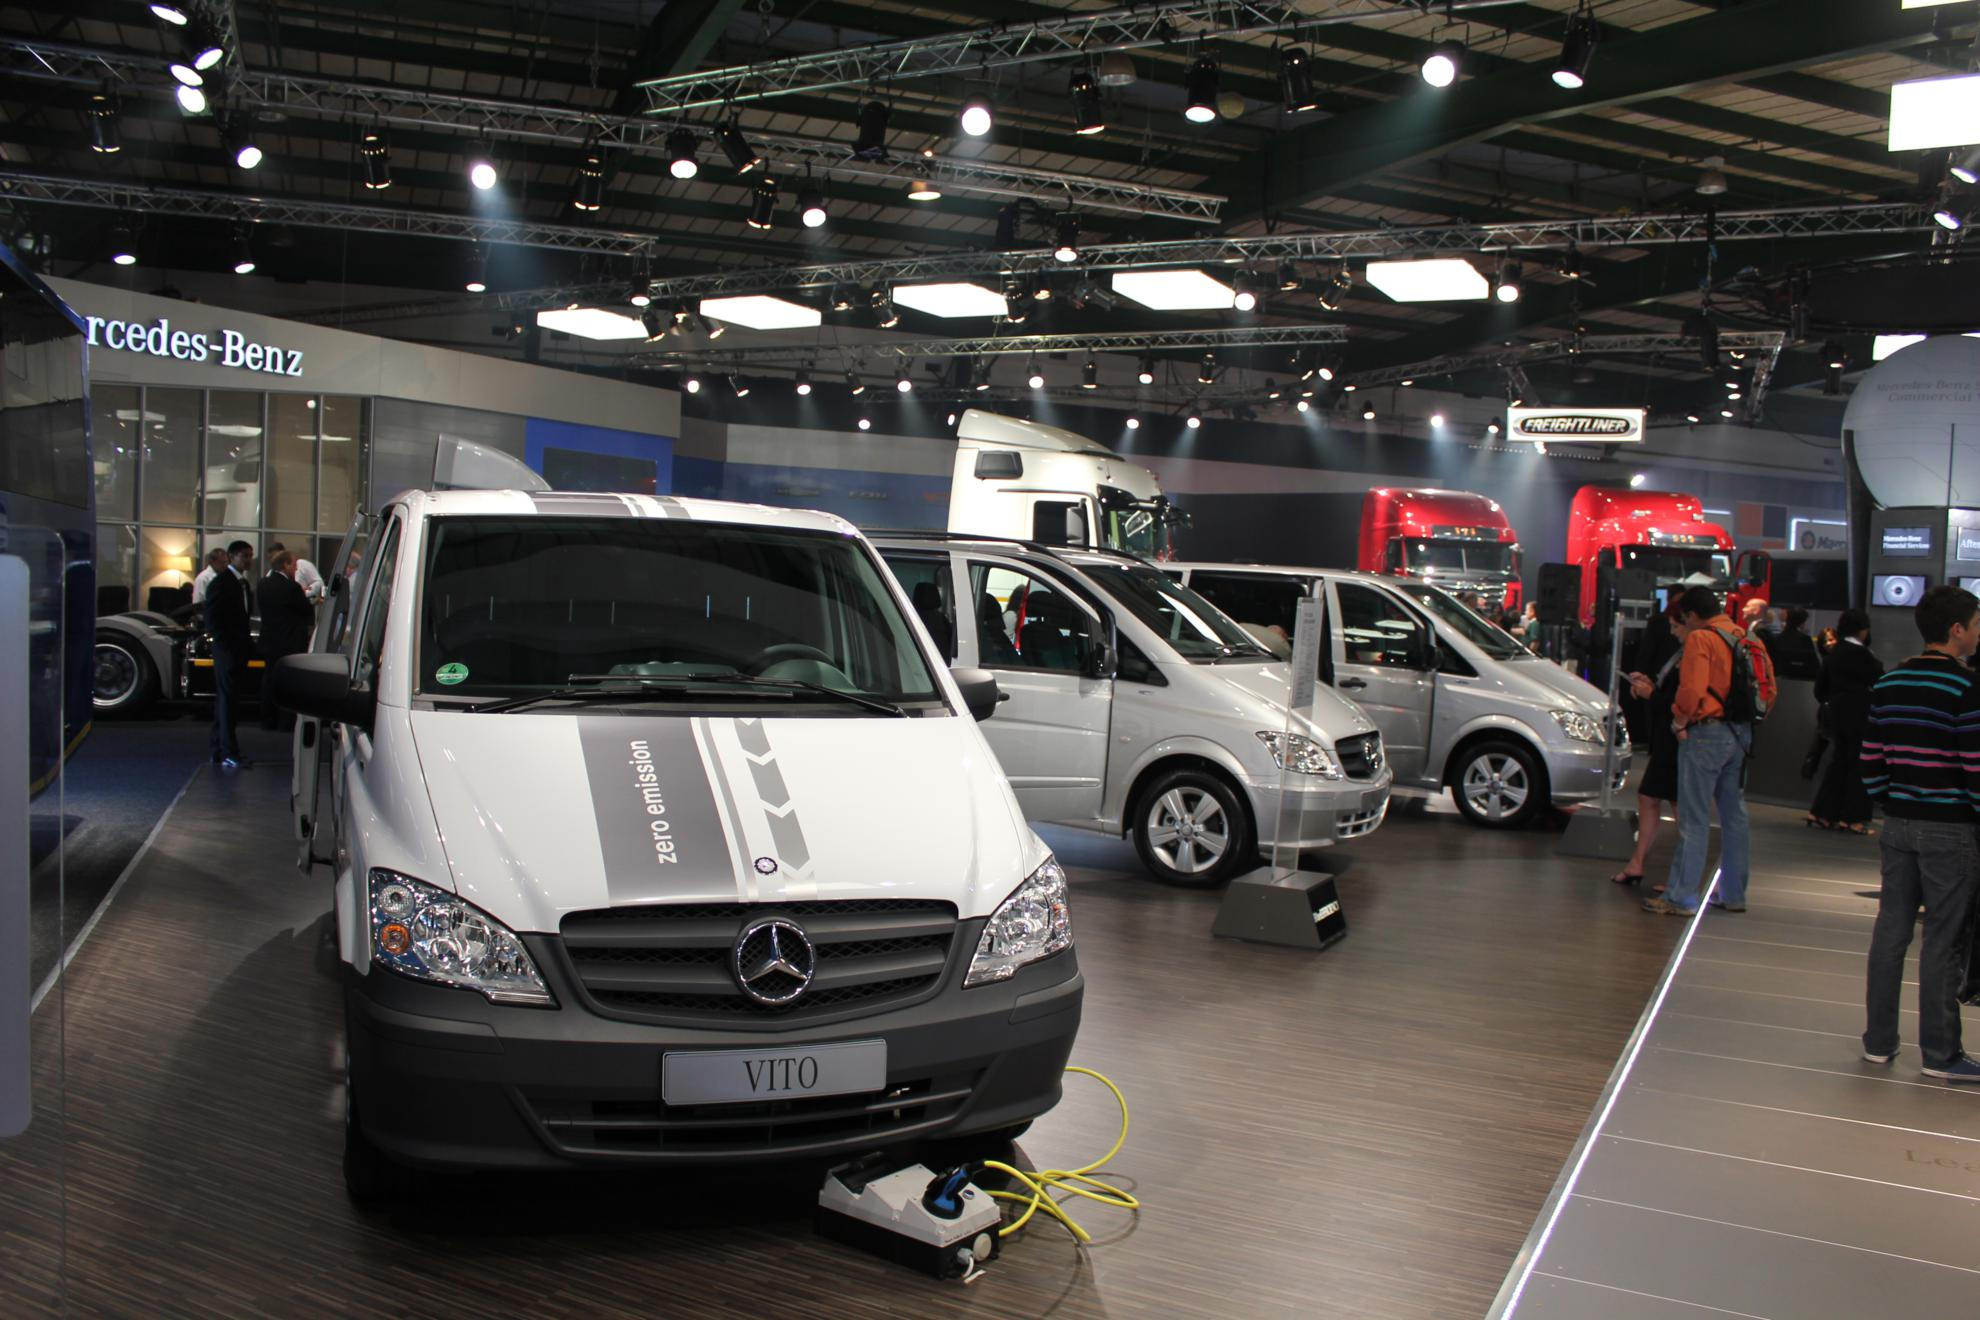 Mercedes-Benz Images Vito Electrical Vehicle